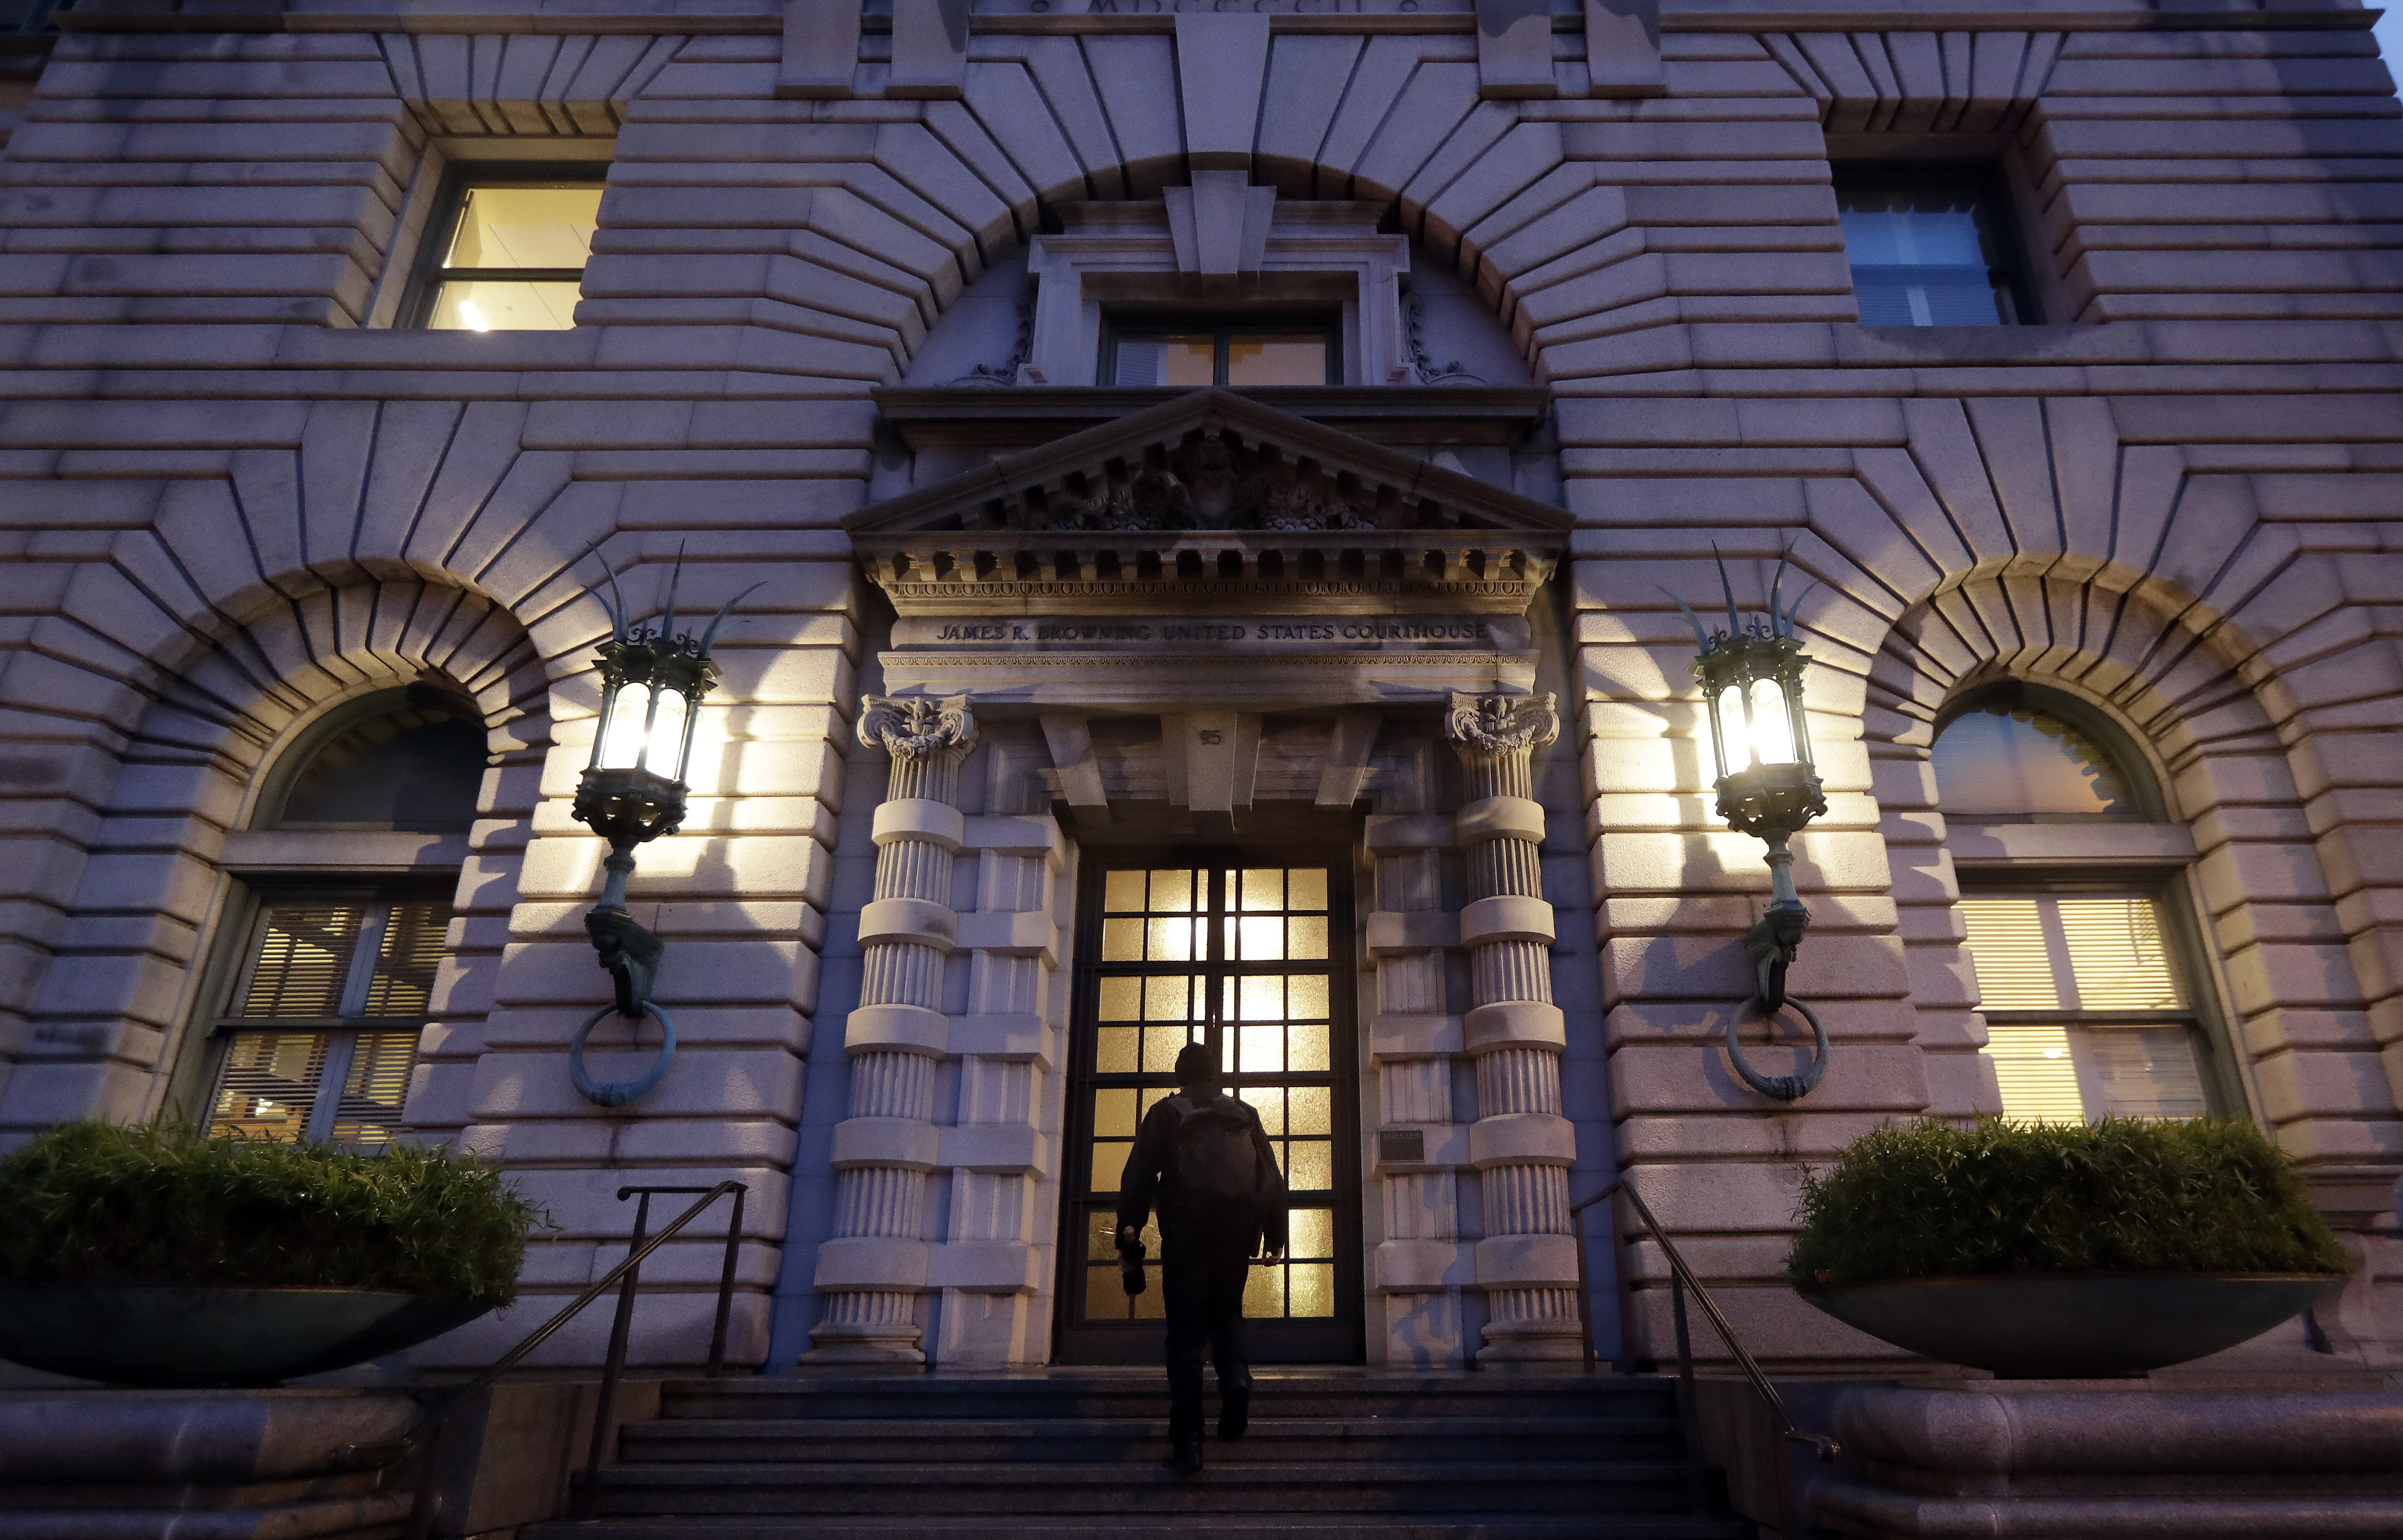 A man walks up the steps of the 9th U.S. Circuit Court of Appeals building, Feb. 9, 2017, in San Francisco. A federal appeals court refused Thursday to reinstate President Donald Trump's ban on travelers from seven predominantly Muslim nations, deal